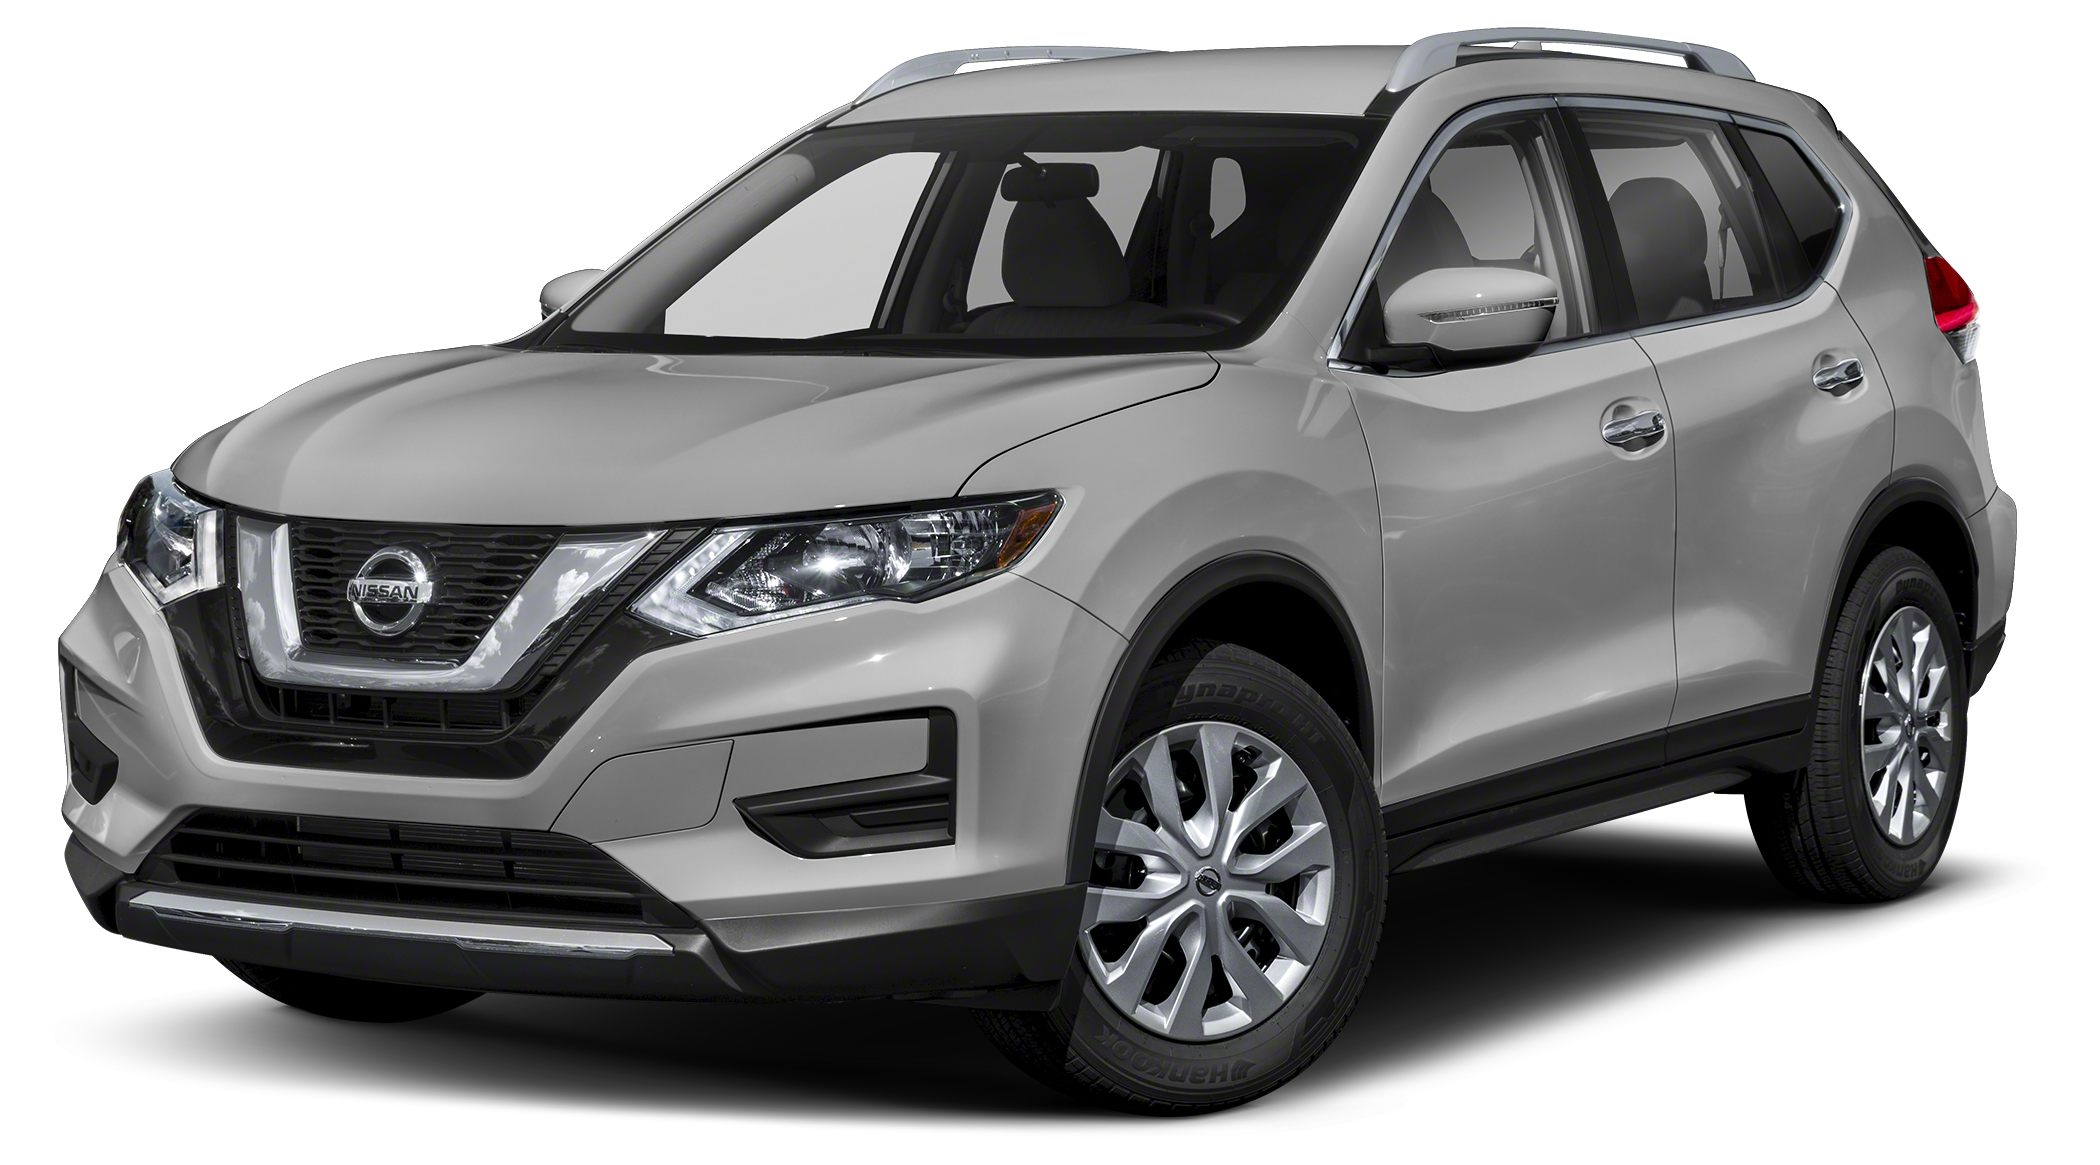 2017 Nissan Rogue SV -Great Gas Mileage- Bluetooth This 2017 Nissan Rogue SV is Silver This Nis